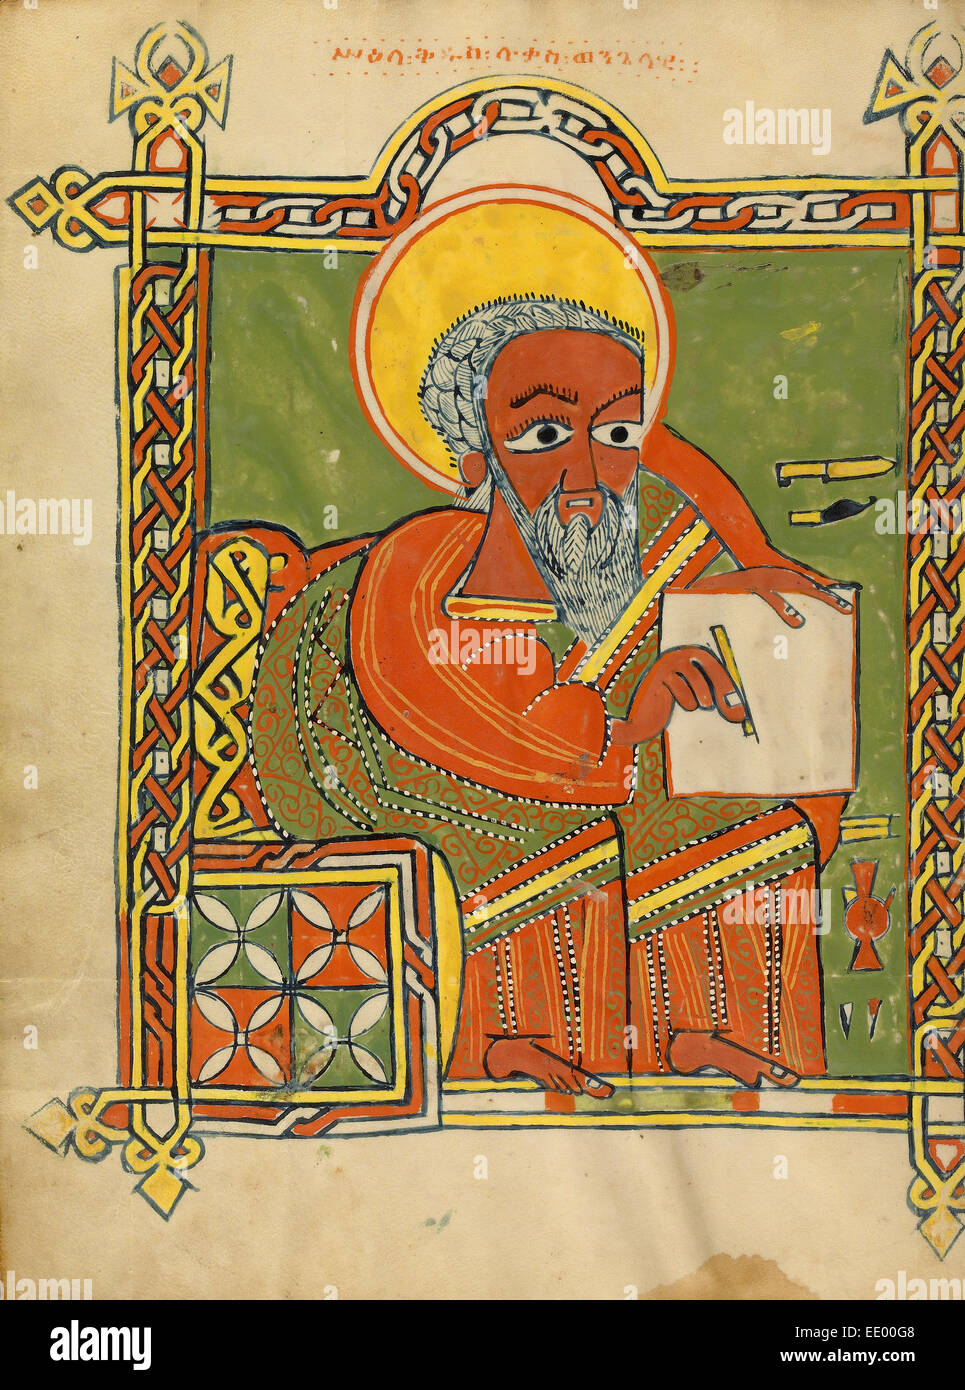 Saint Luke; Unknown; Ethiopia, Africa; about 1504 - 1505; Tempera on parchment - Stock Image